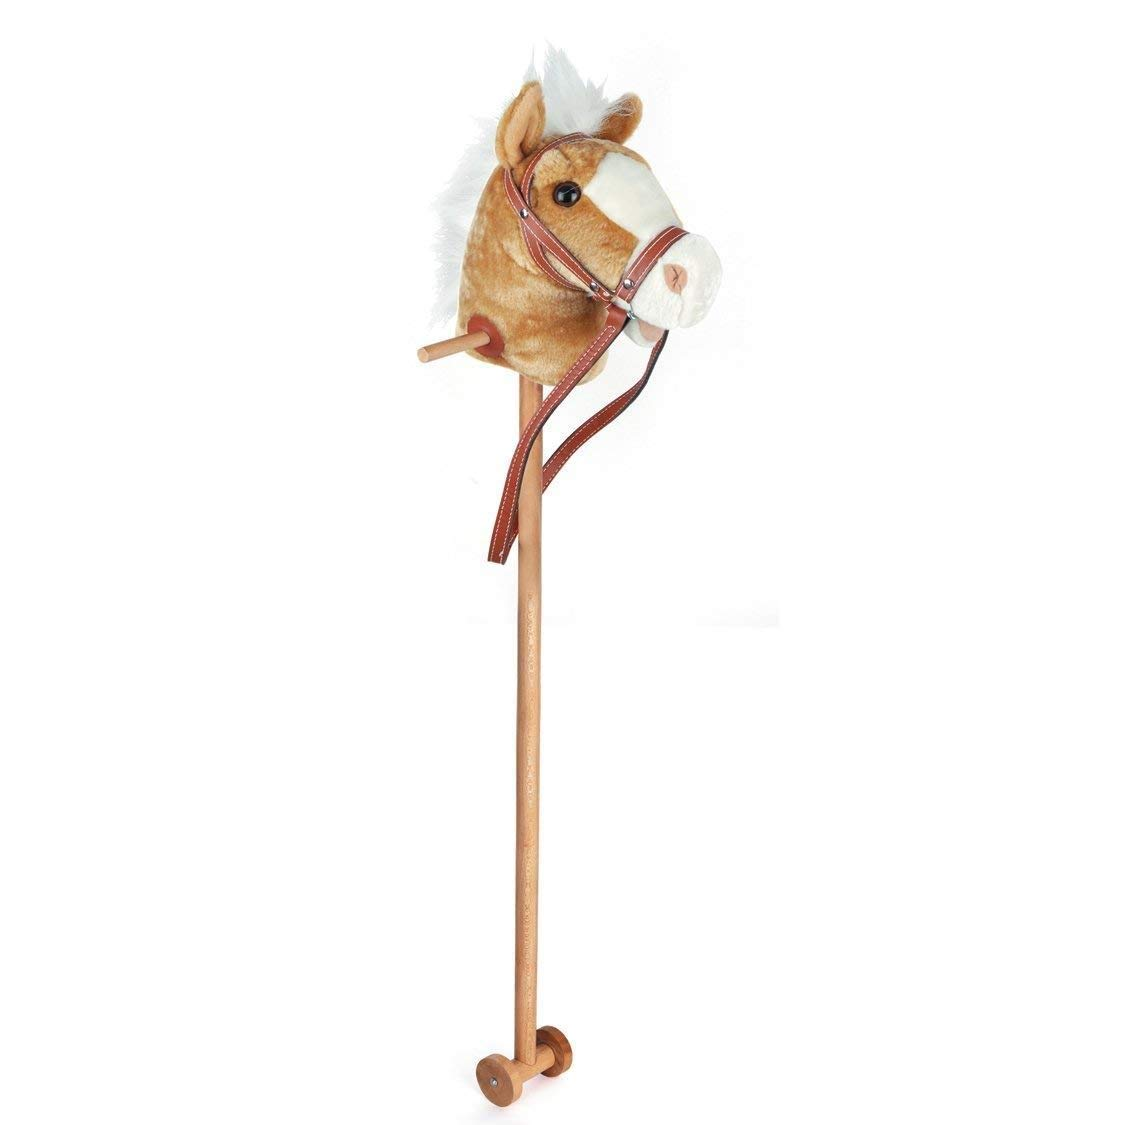 100cm Childrens Kids Toy Hobby Stick Horse with Neighing Sound